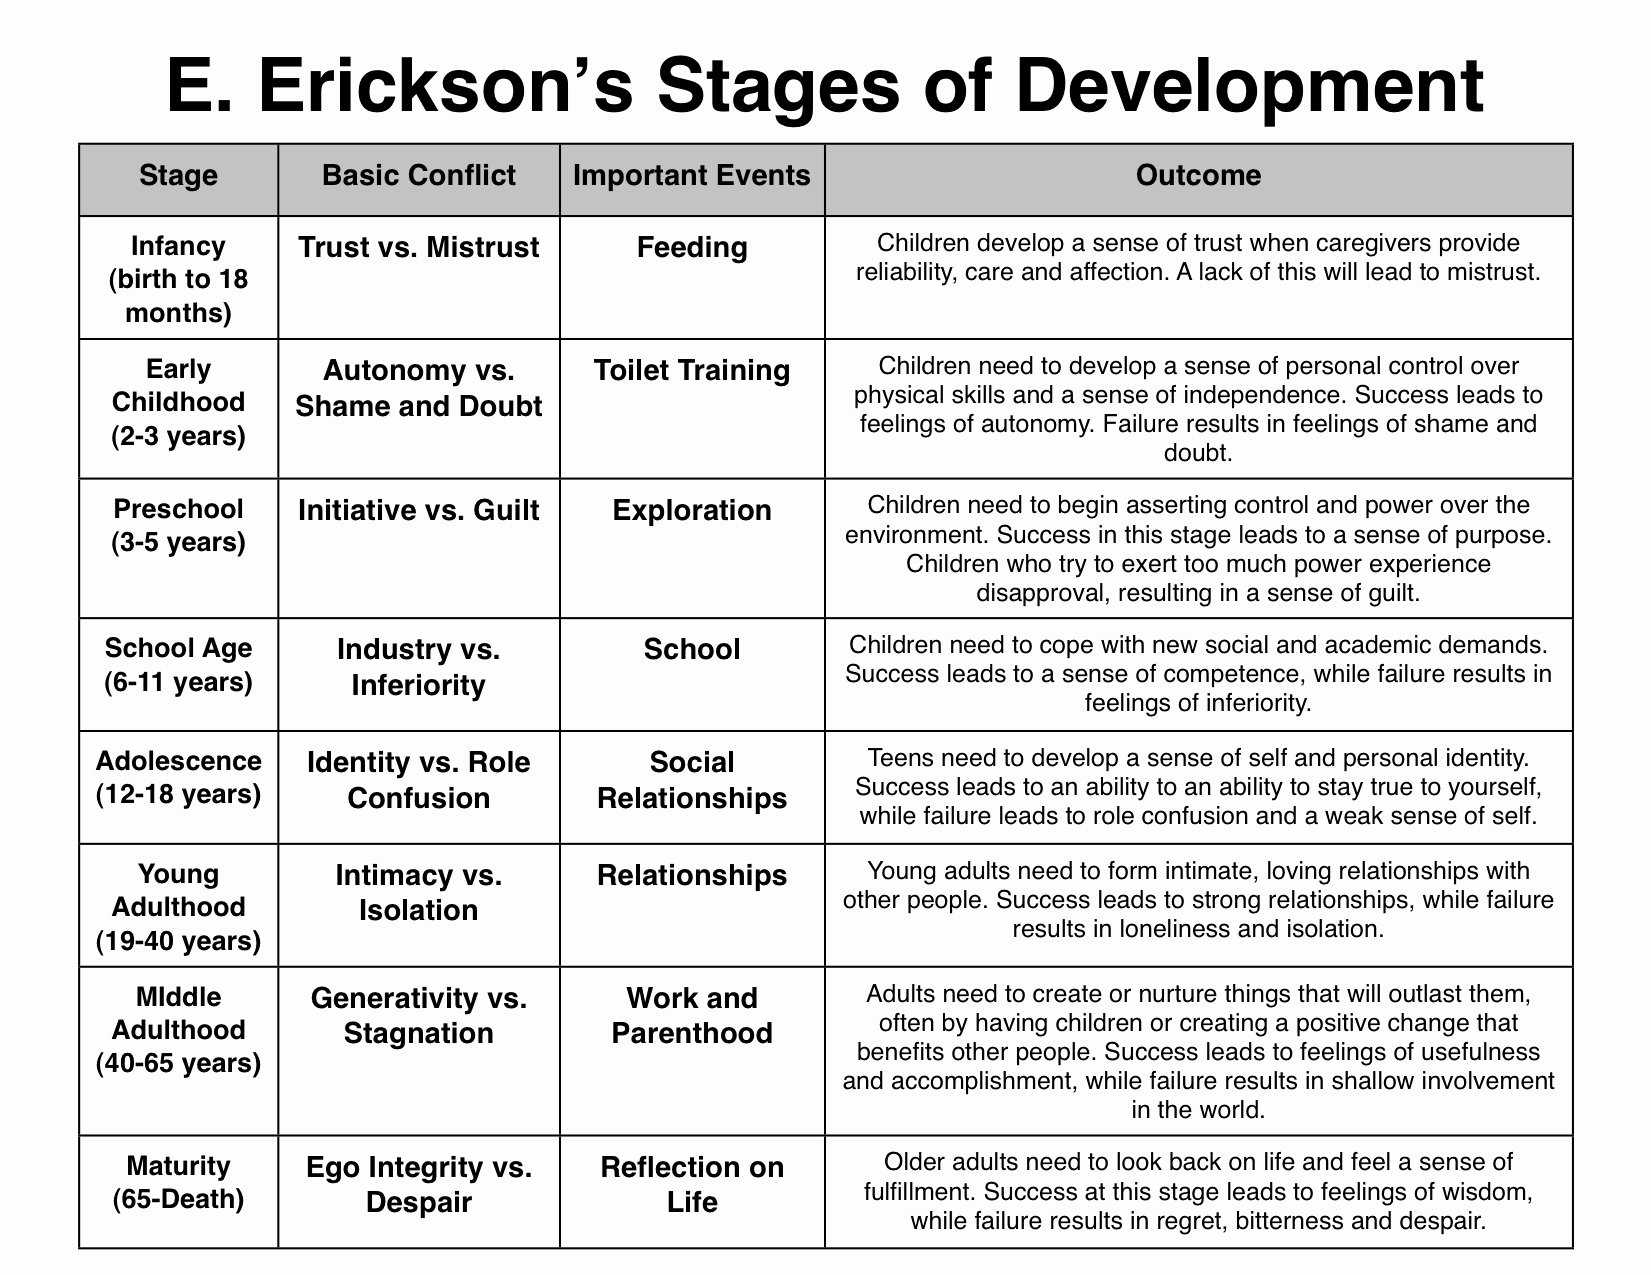 Growth and Development Chart Erikson Inspirational Education E Erickson S Stages Of Development is A